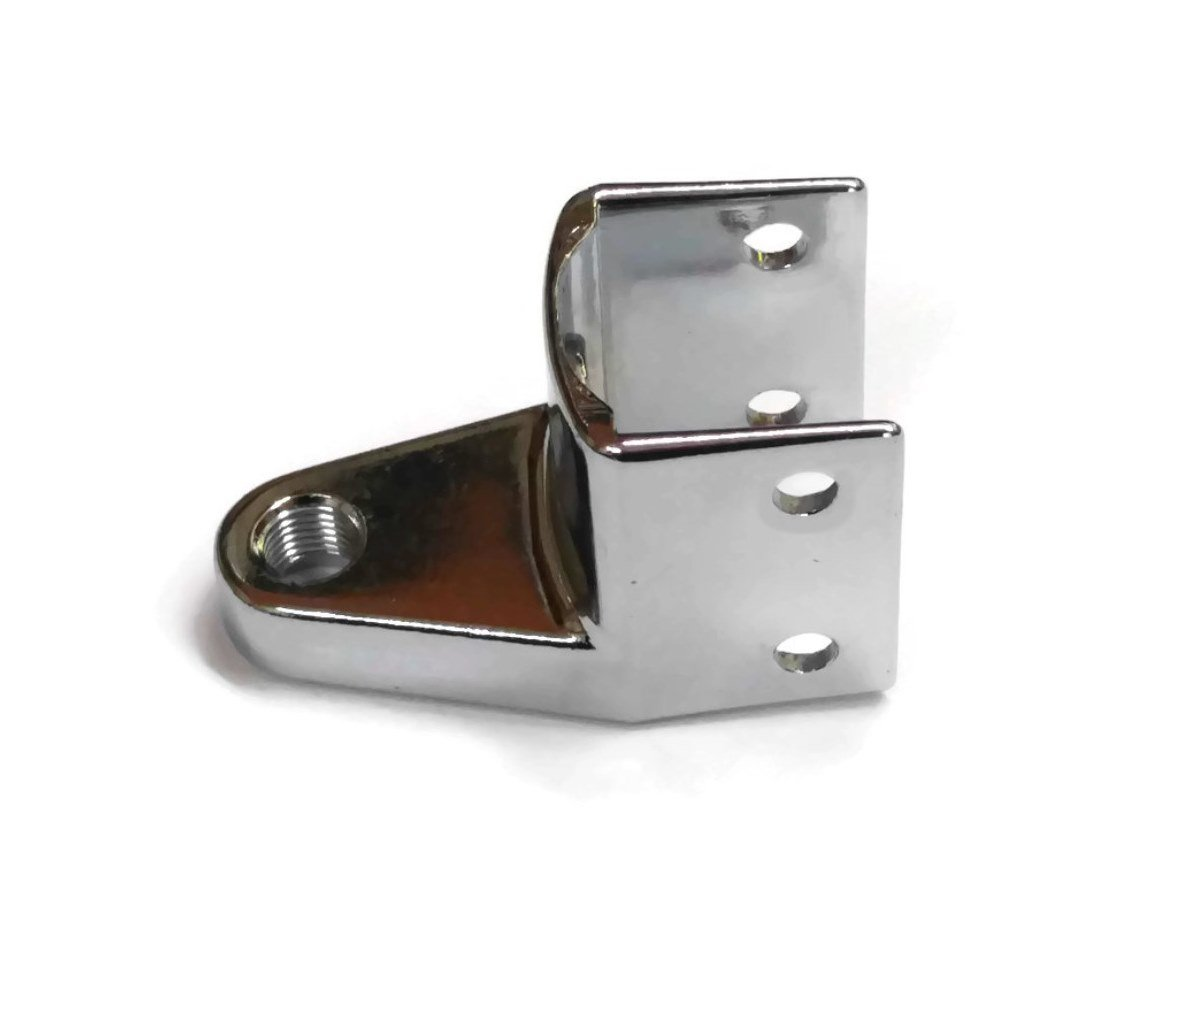 Hadrian 601350 Upper Wrap-Around Hinge - Replacement Toilet Partition Part by Hadrian